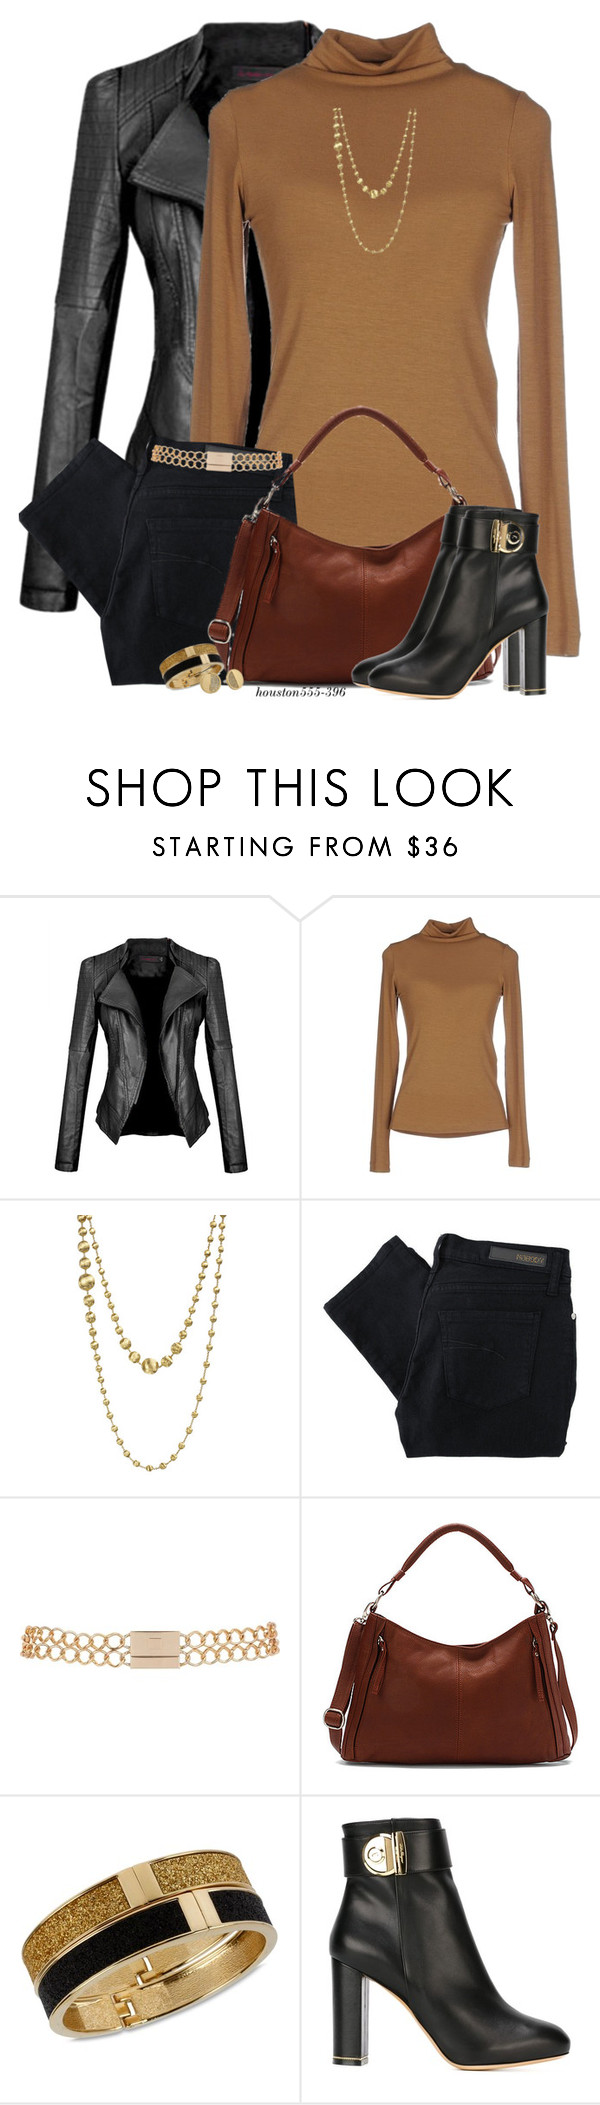 """Leather Jacket"" by houston555-396 ❤ liked on Polyvore featuring Marco Bicego, Nobody Denim, River Island, Osgoode Marley, Betsey Johnson, Salvatore Ferragamo, Kate Spade, women's clothing, women's fashion and women"